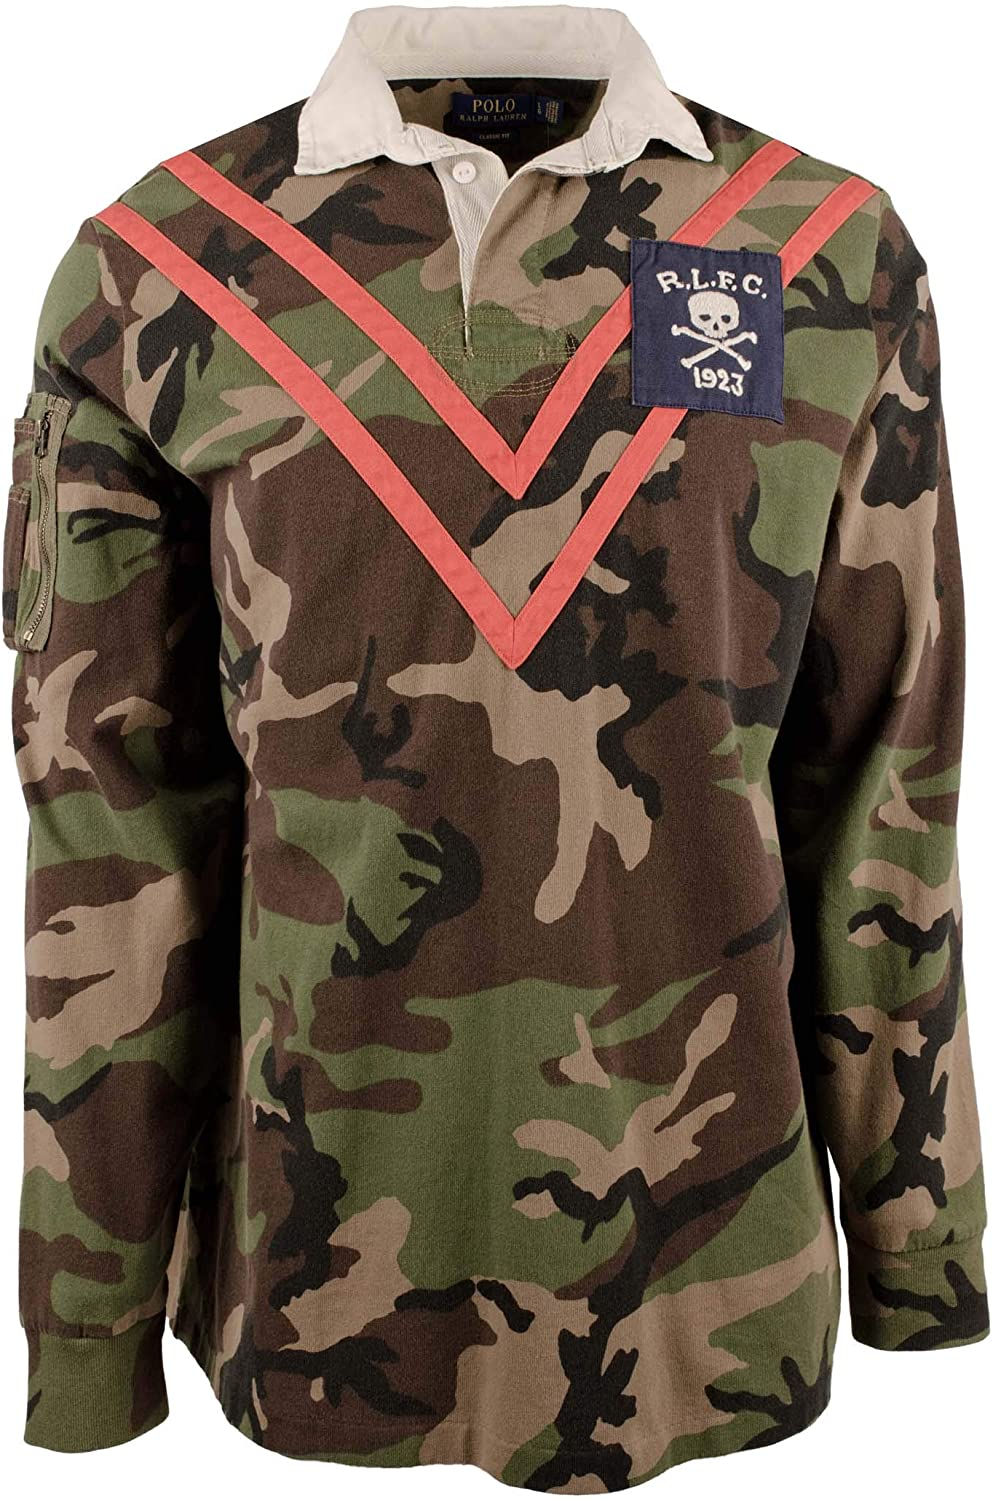 Polo Ralph Lauren Men's Camouflage Long Sleeve Rugby Shirt